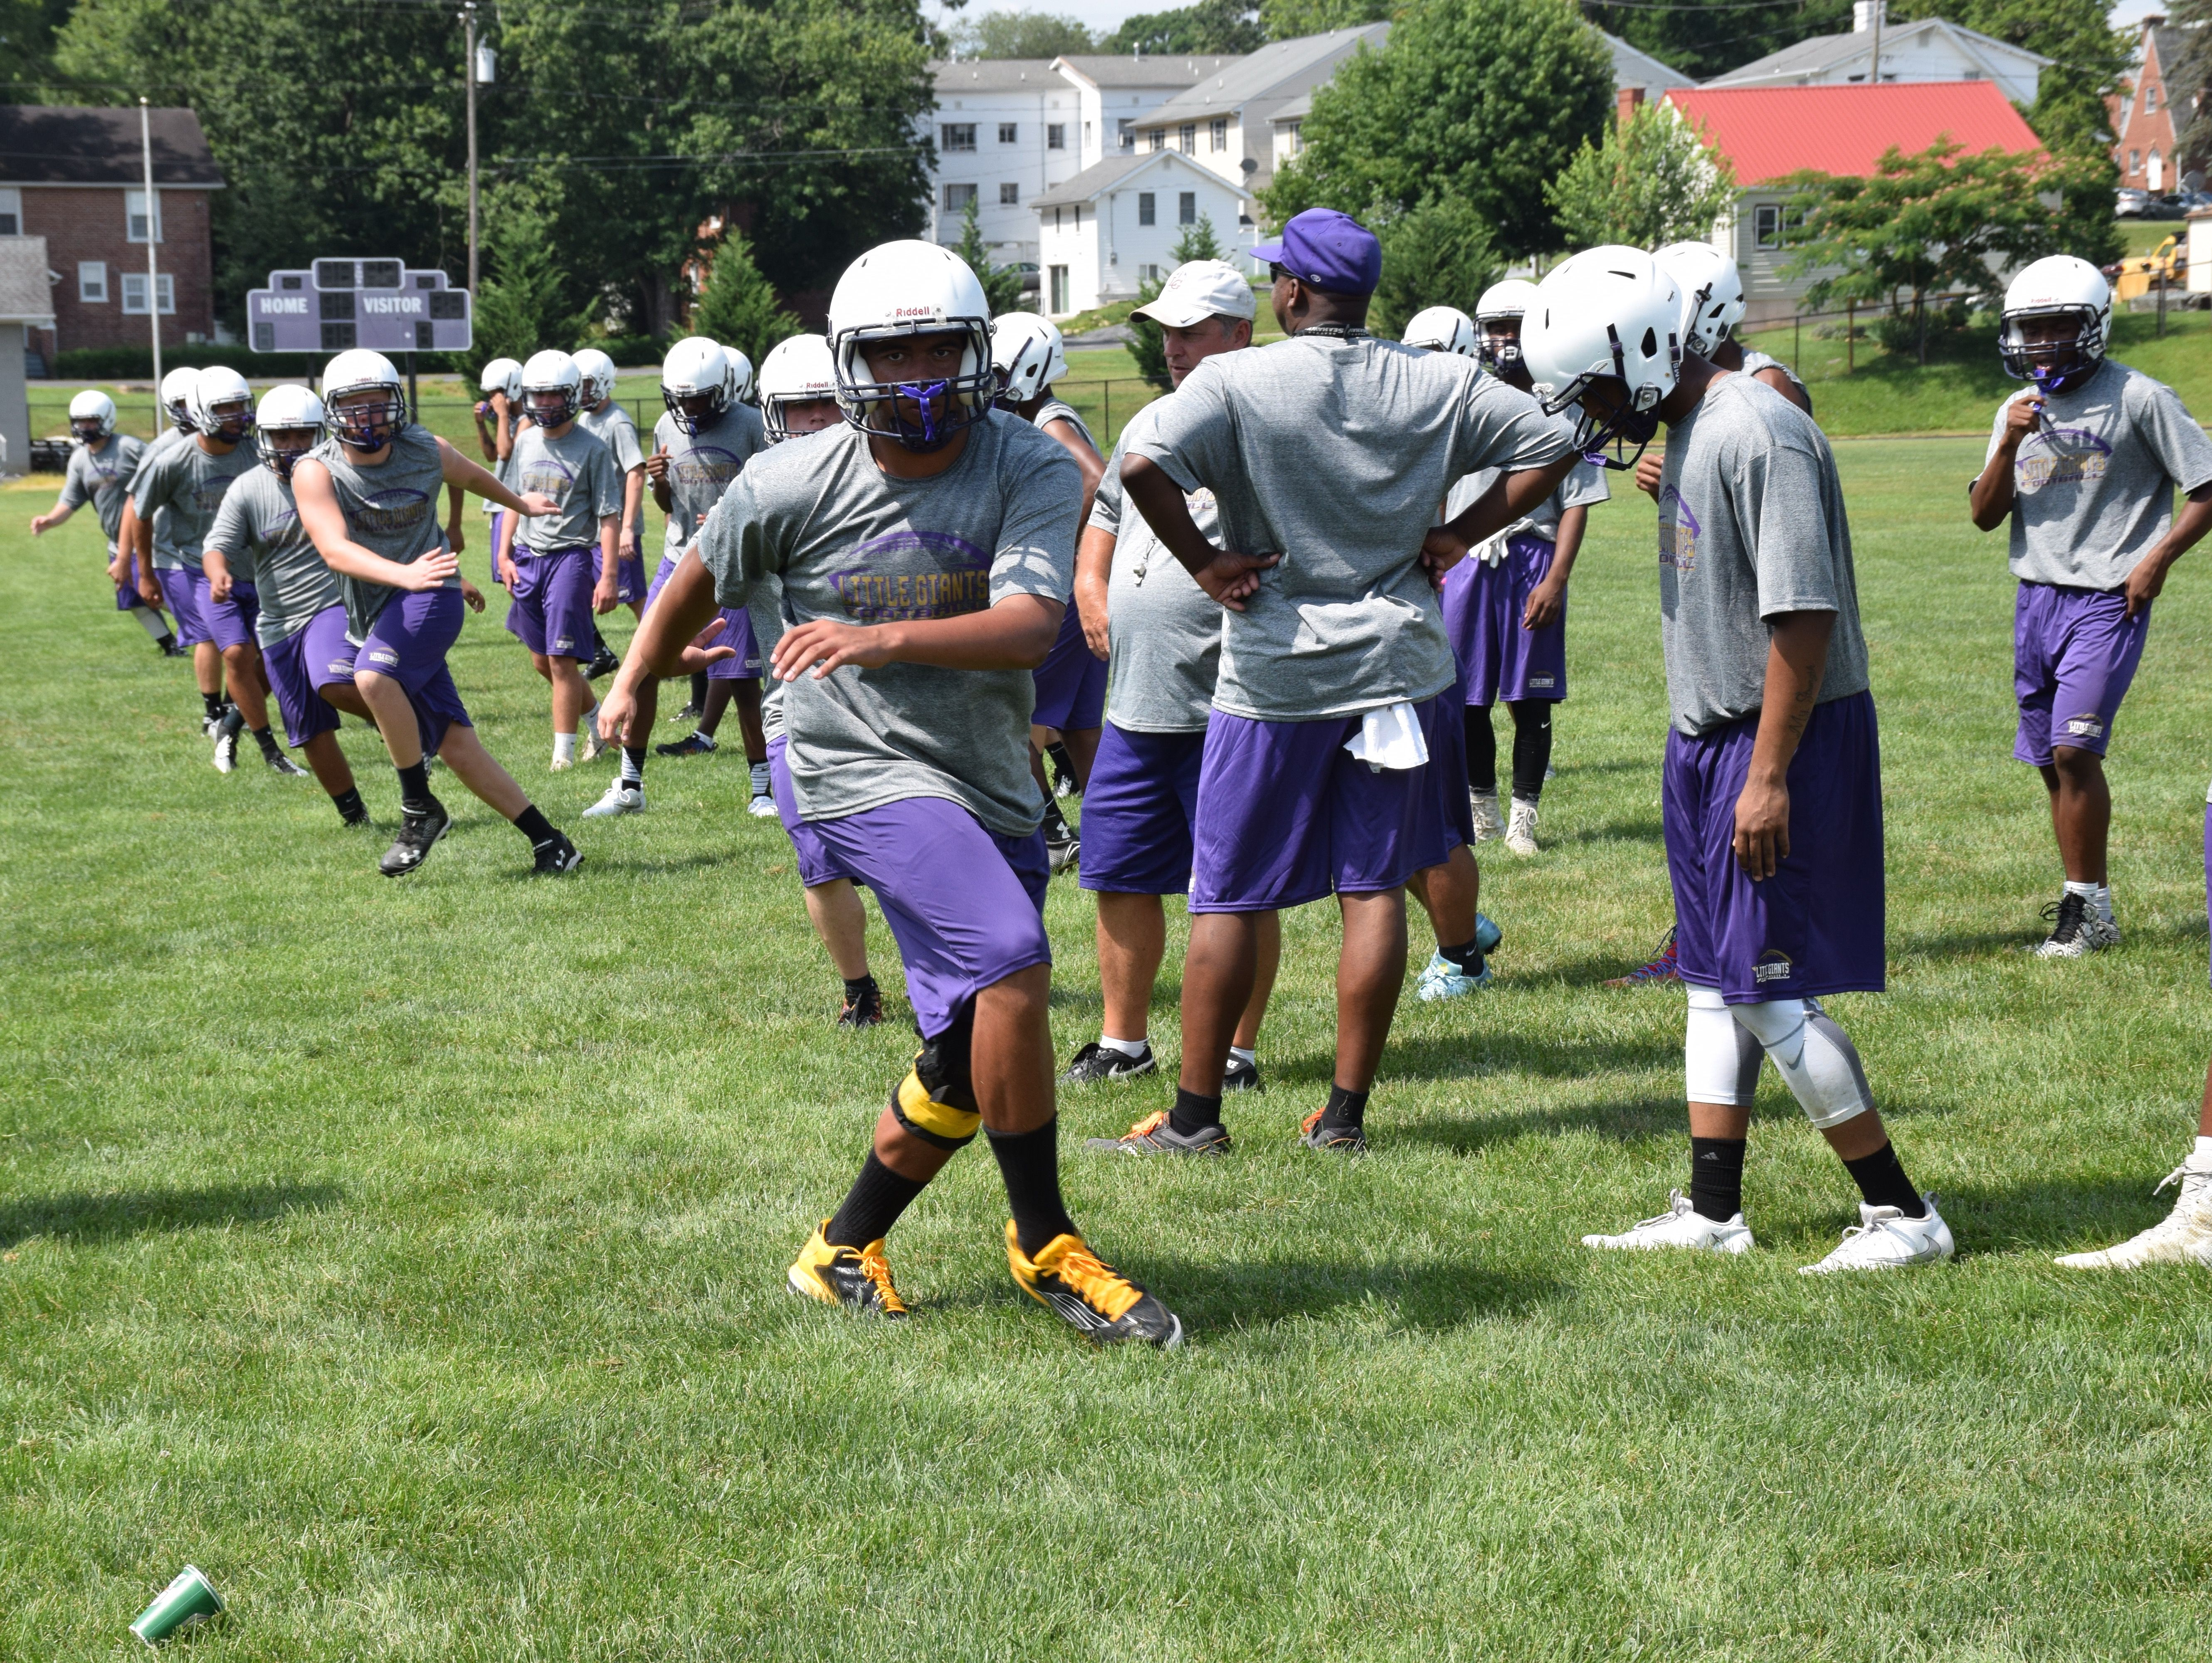 Waynesboro High School football players go through an agility drill during the first day of practice on Thursday, July 28, 2016, at Waynesboro High School